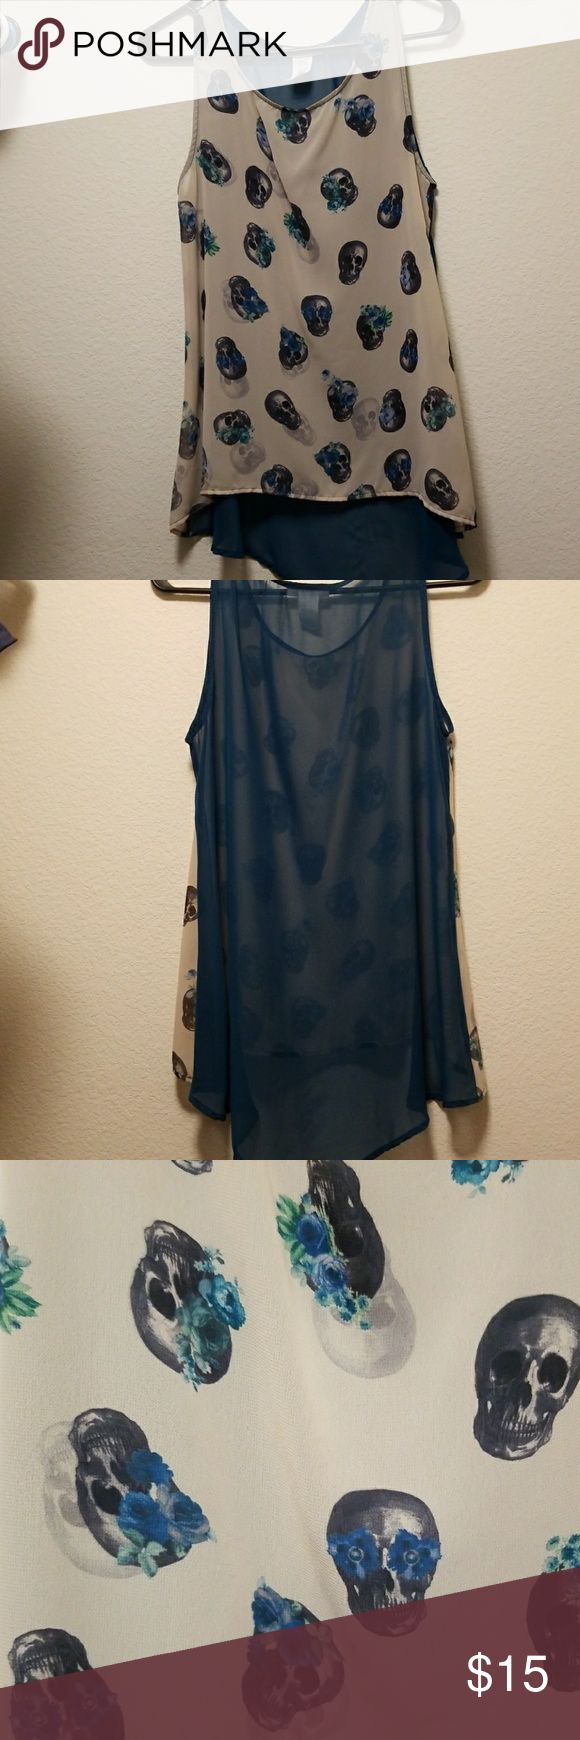 Skull Tank Top See through cream and teal skull tank top. Gently used. Misope Tops Tank Tops